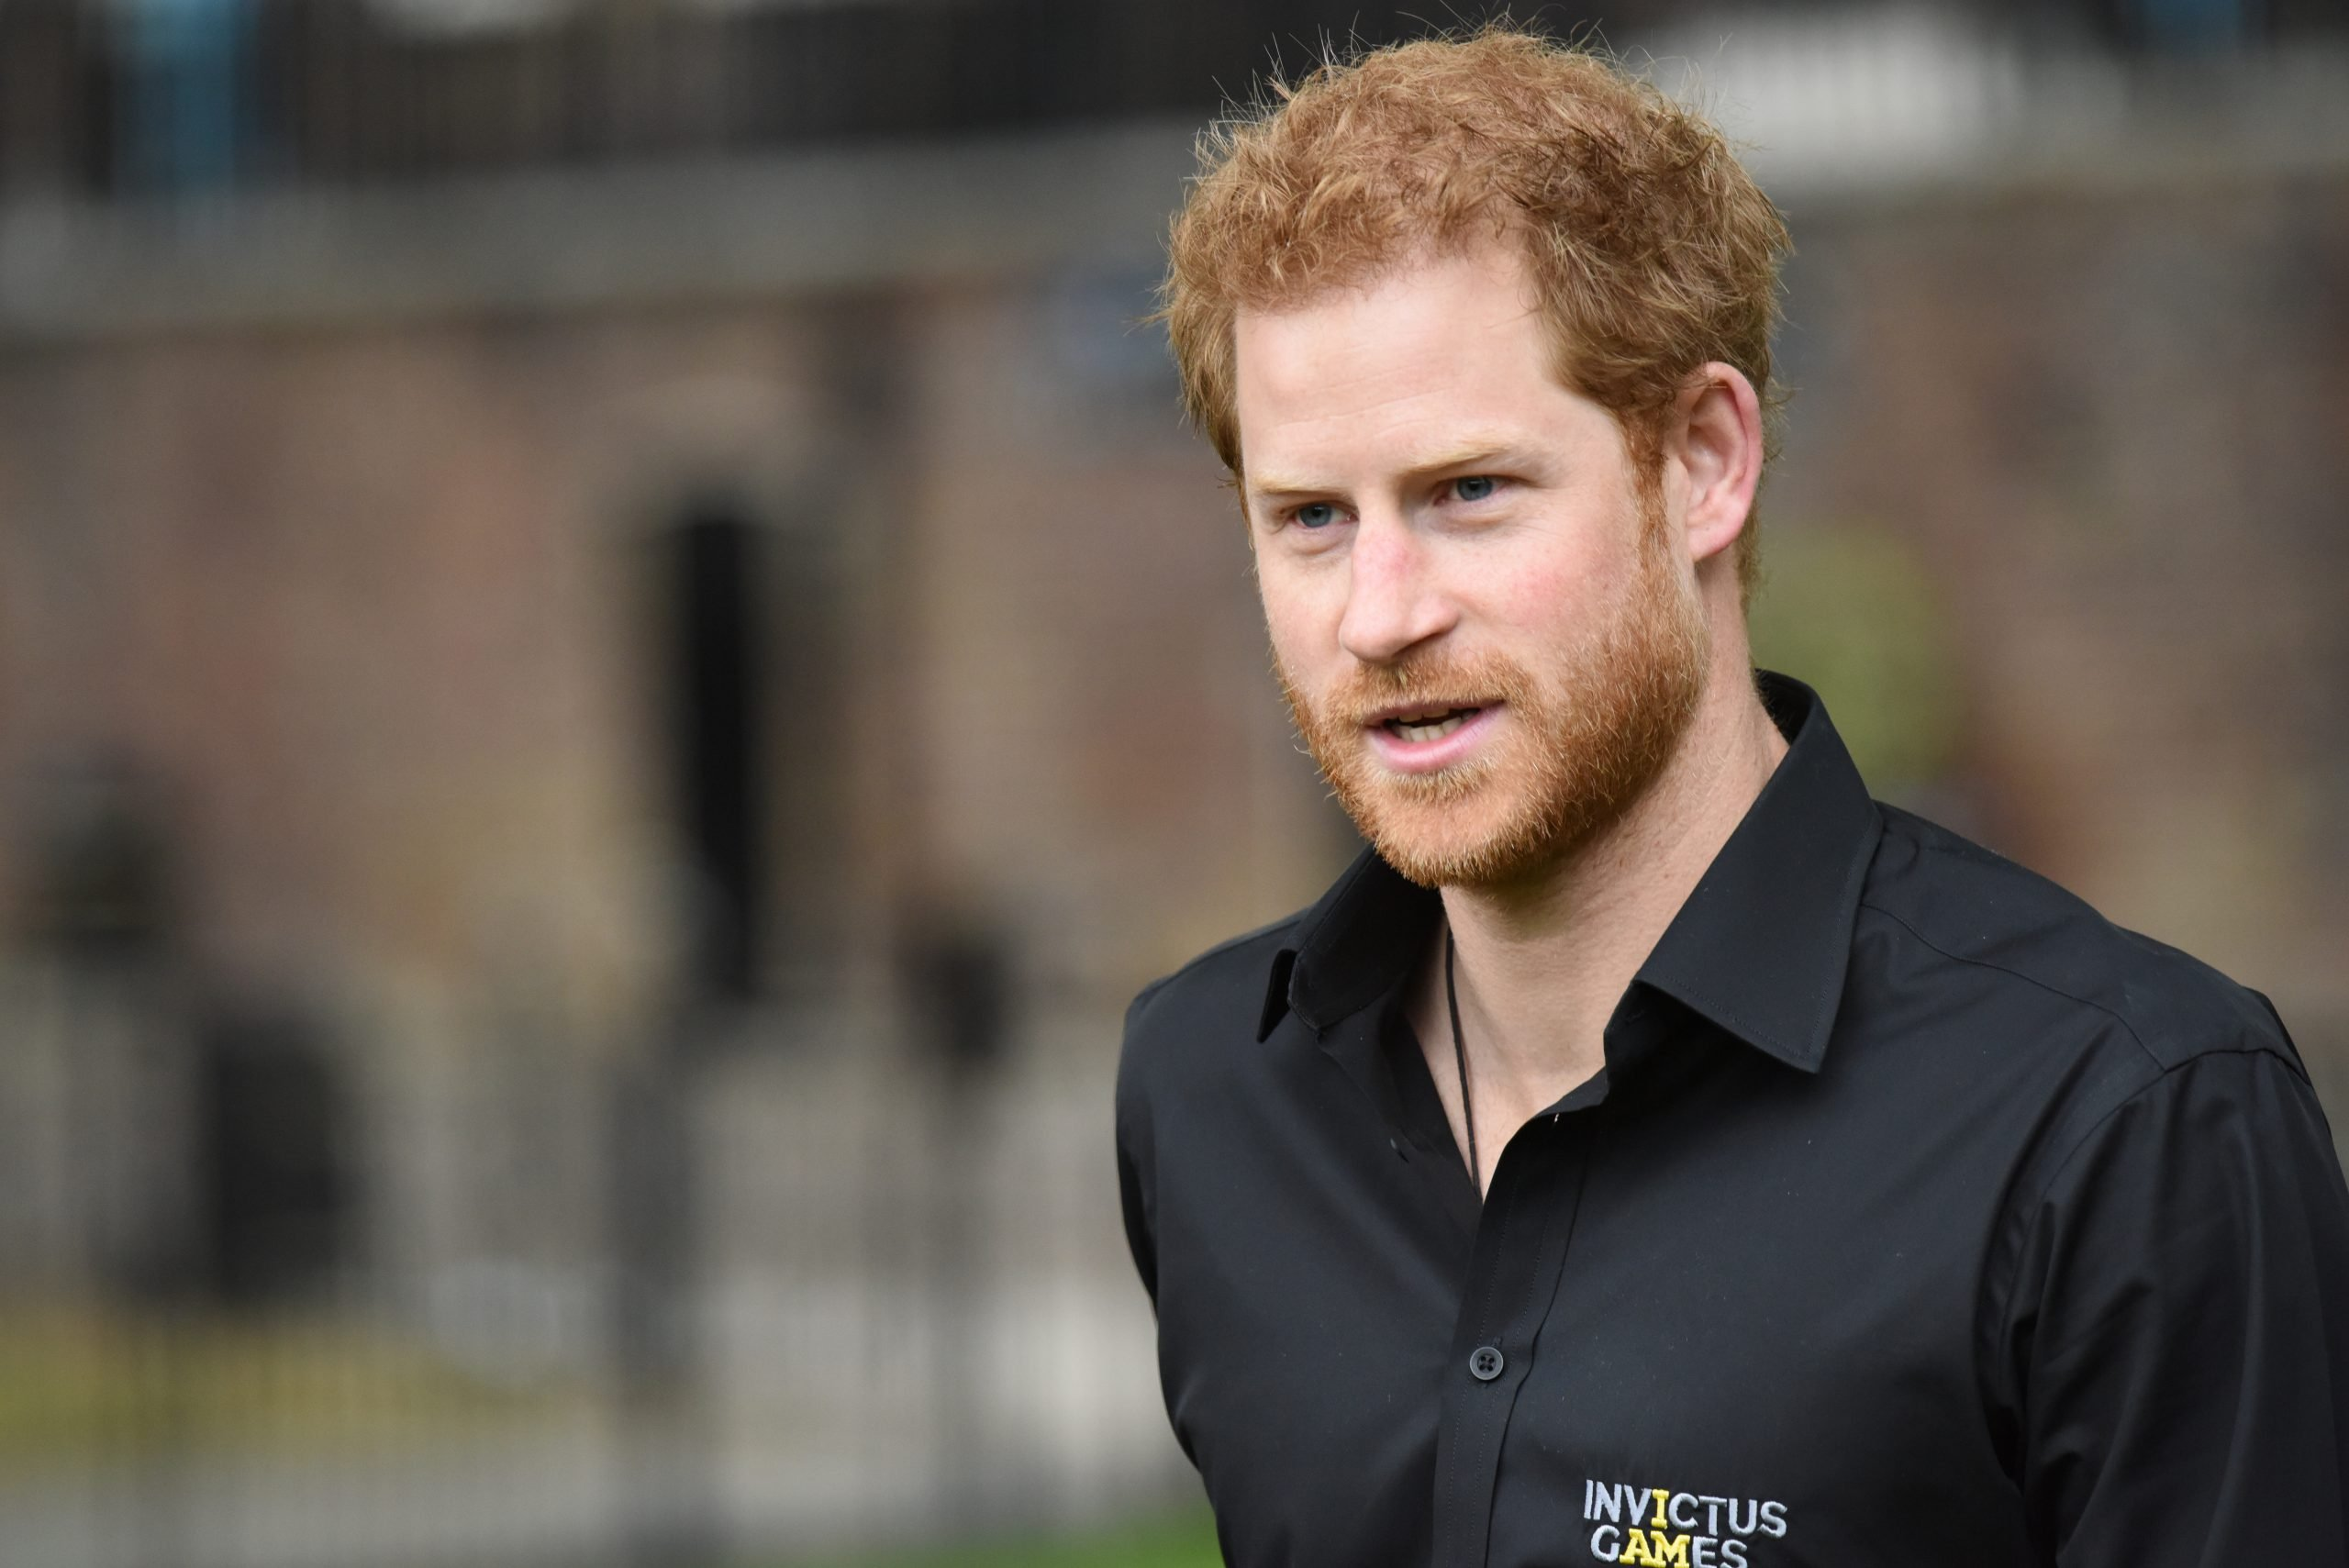 Prince Harry photographed at an outdoor press event. He wears a black shirt and is looking past the camera with his mouth partly open, mid sentence.